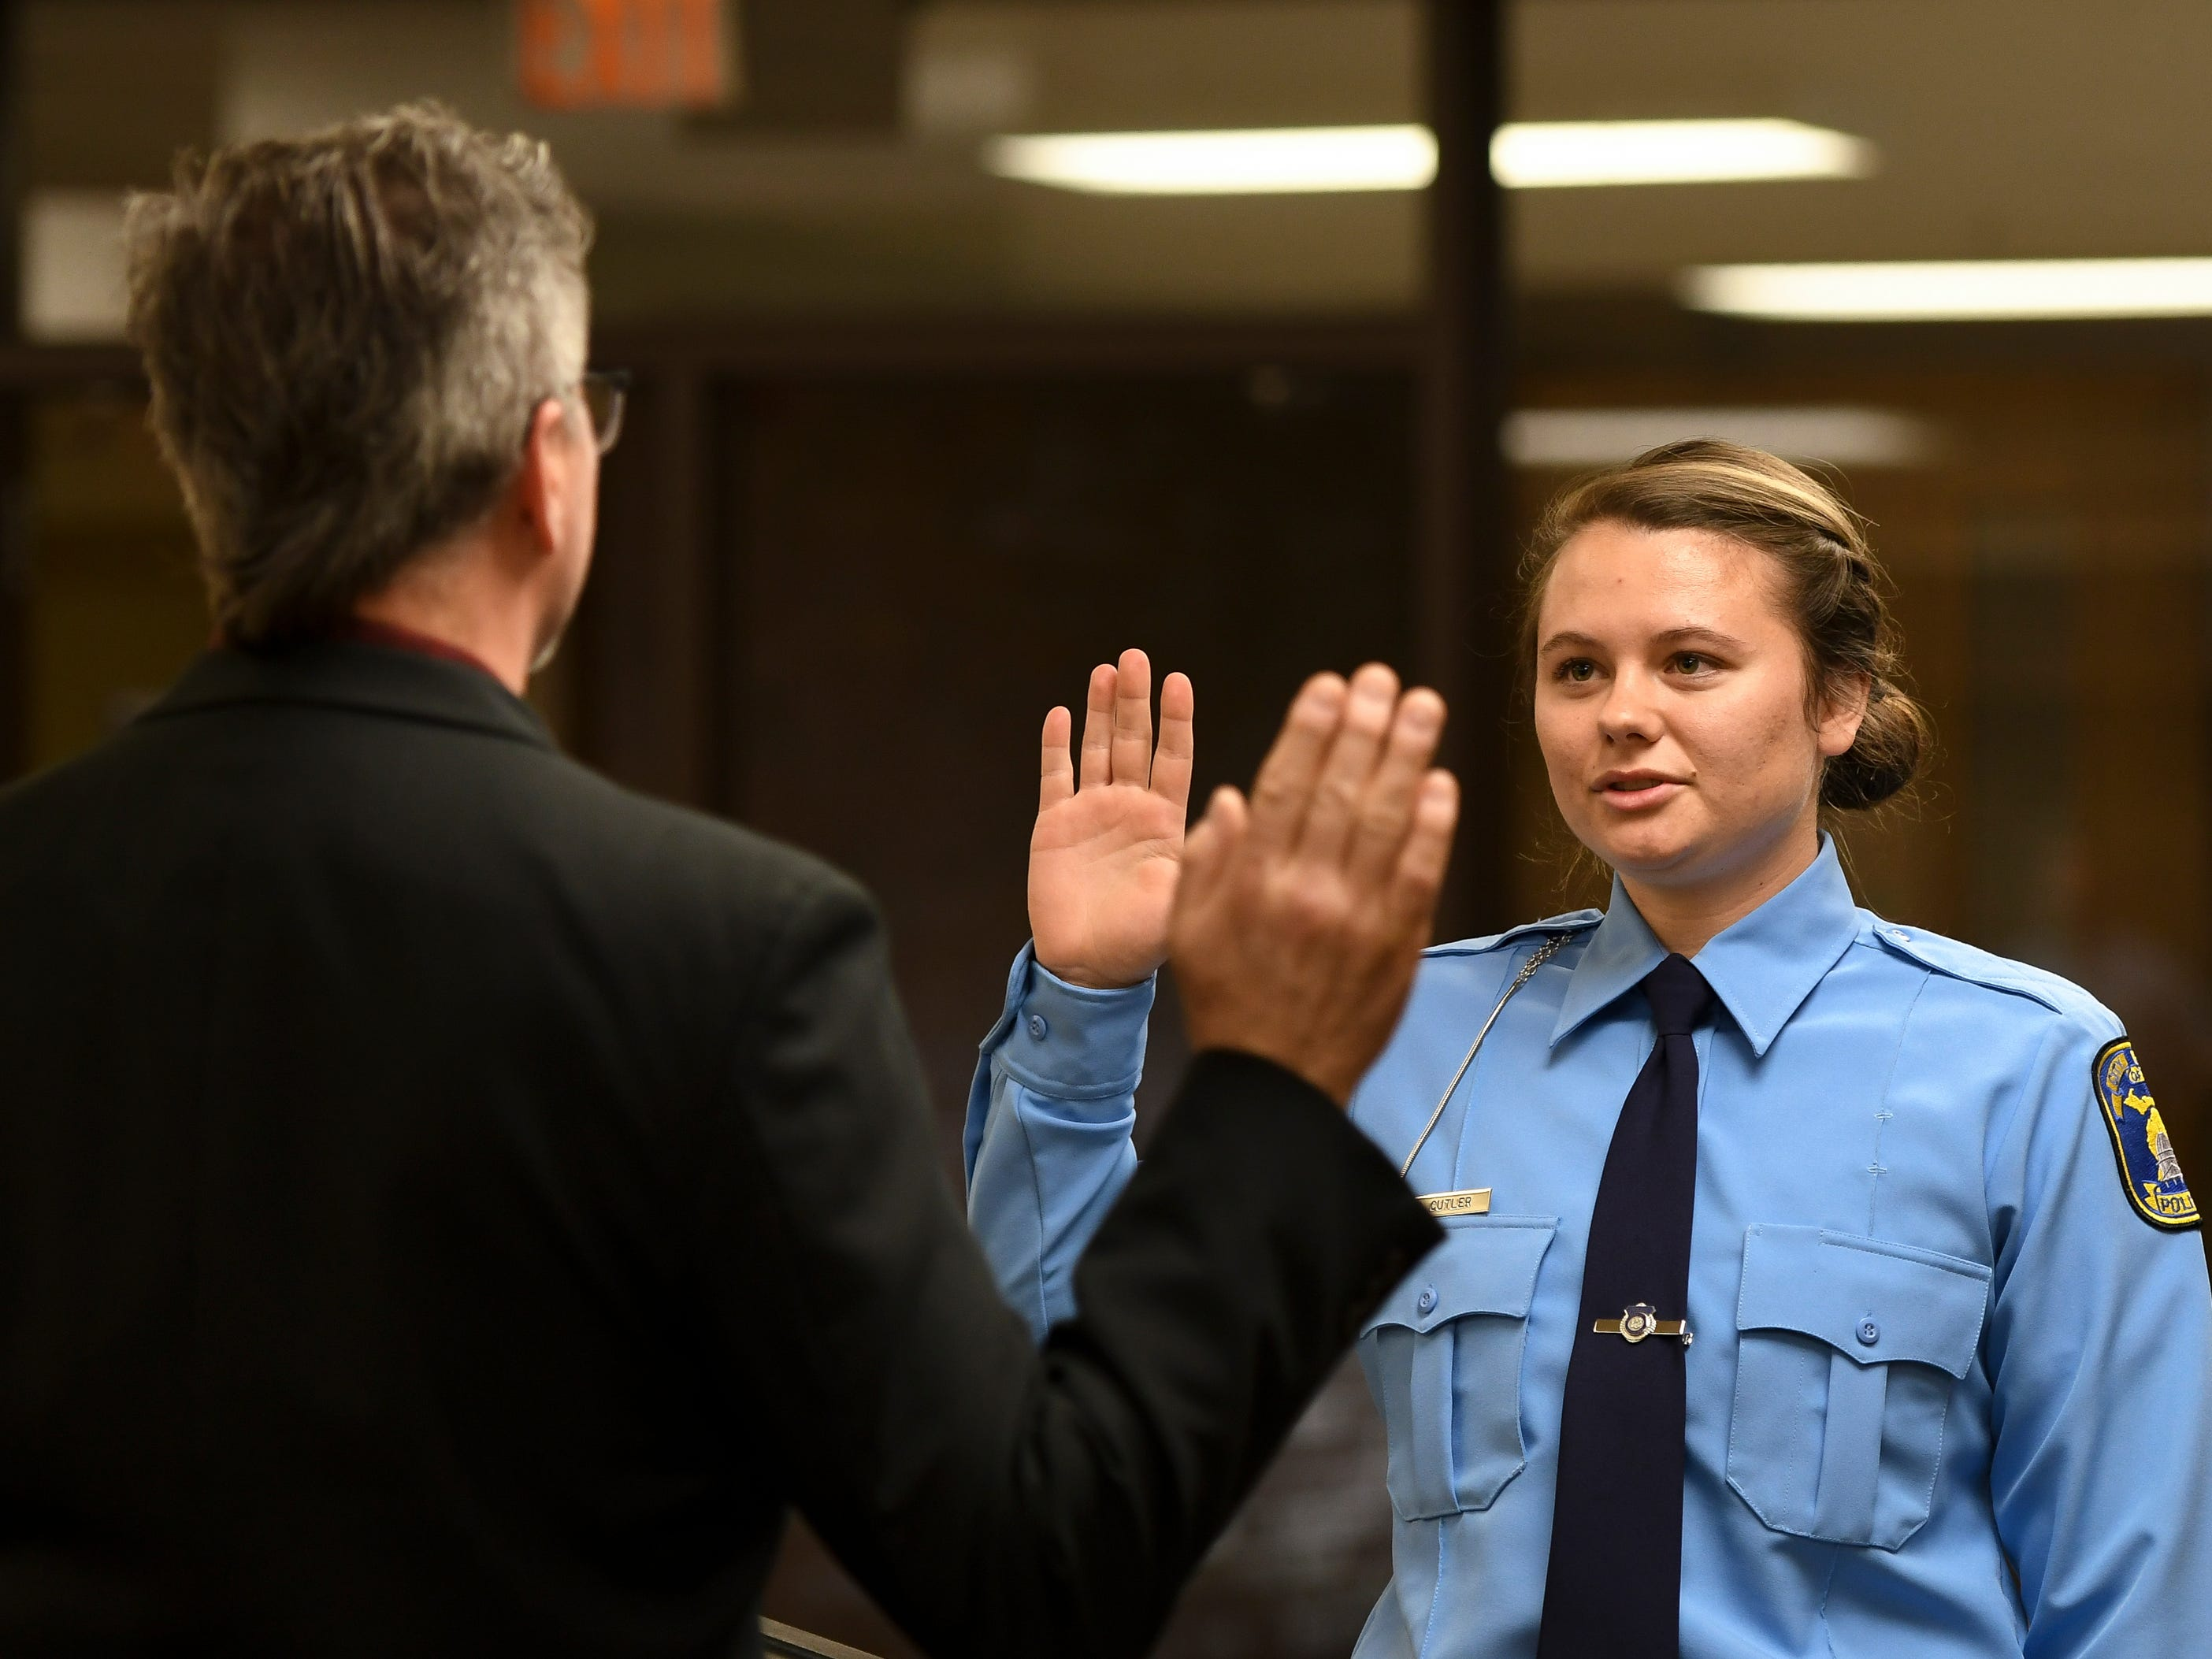 Ali Cutler is sworn in by Lansing City Clerk Chris Swope, Monday, May 6, 2019, during the swearing in ceremony at the LPD Operations Center in Lansing.